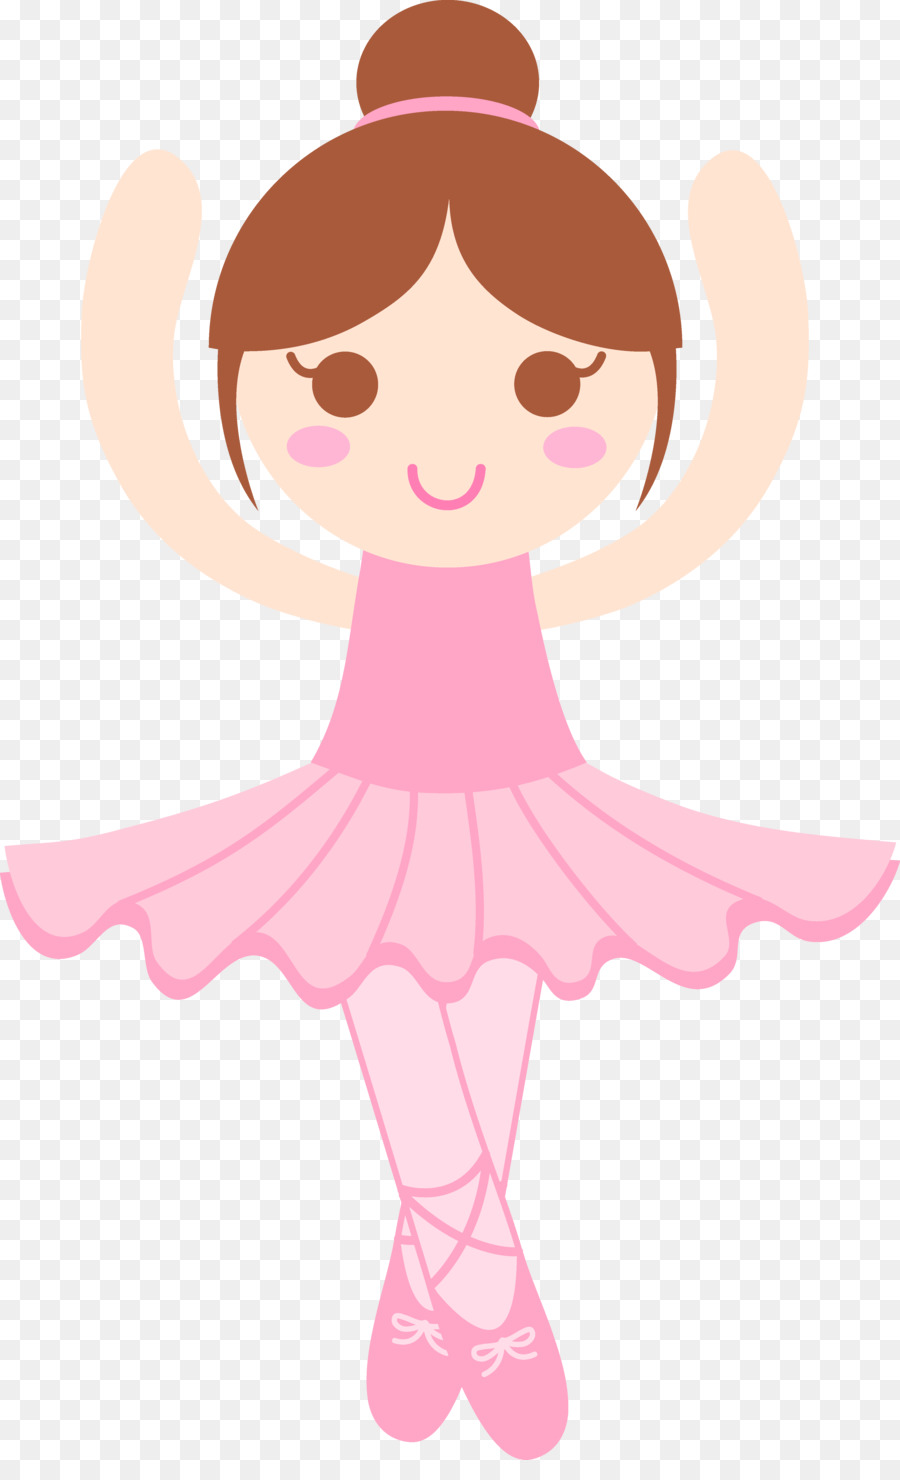 Ballet Dancer Drawing Clip art - pink singer